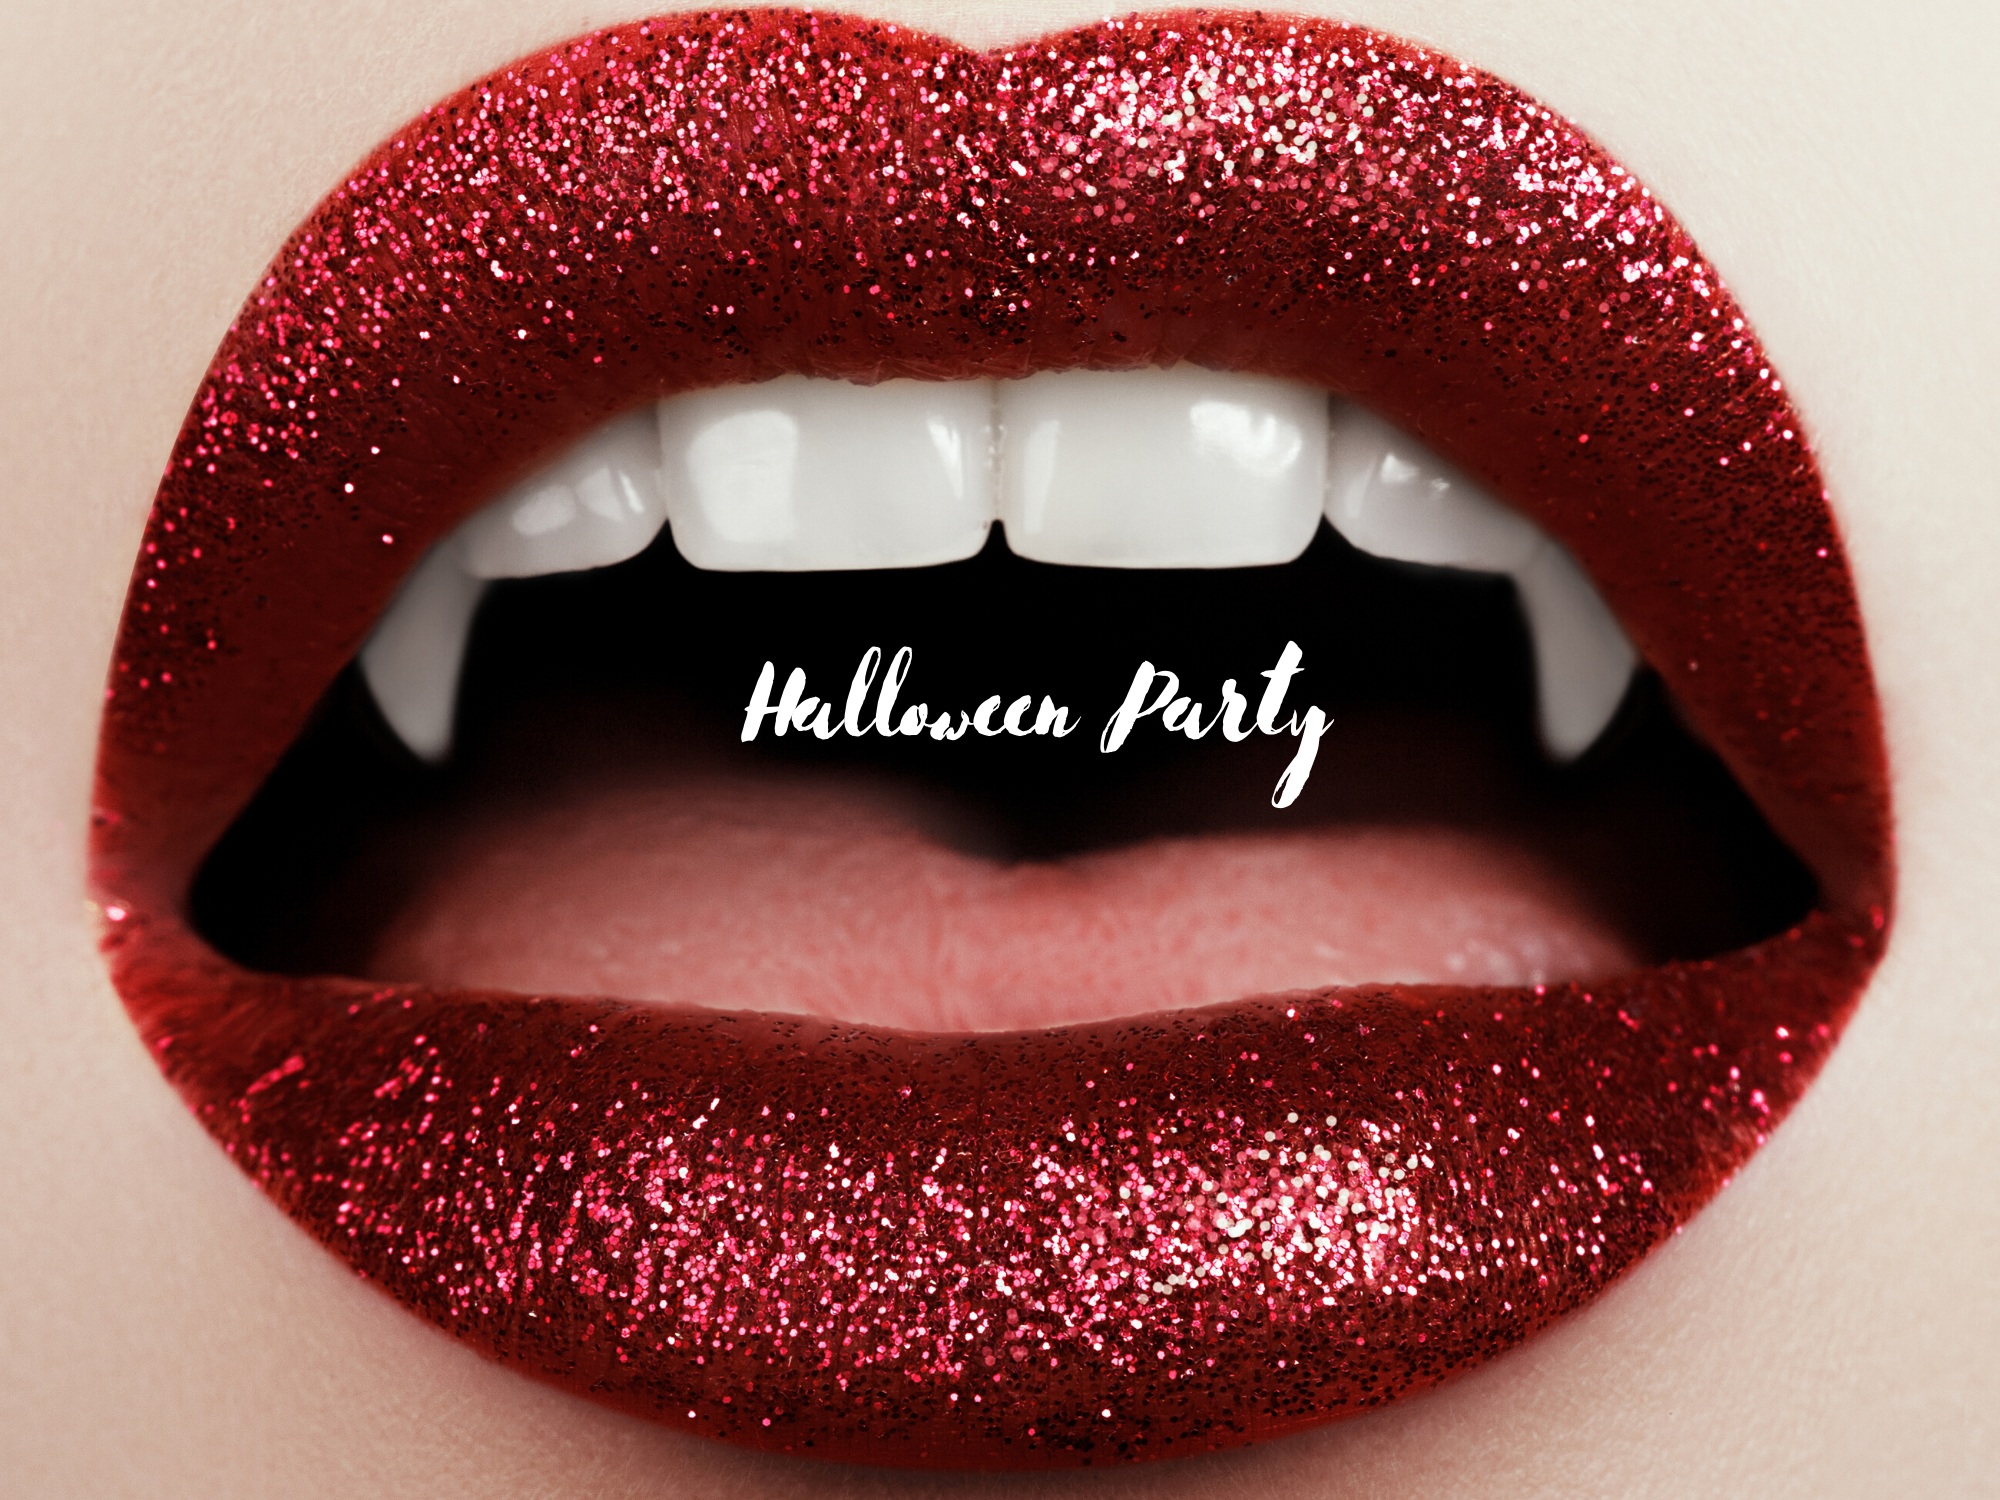 [Masturbation Monday] The Halloween Party